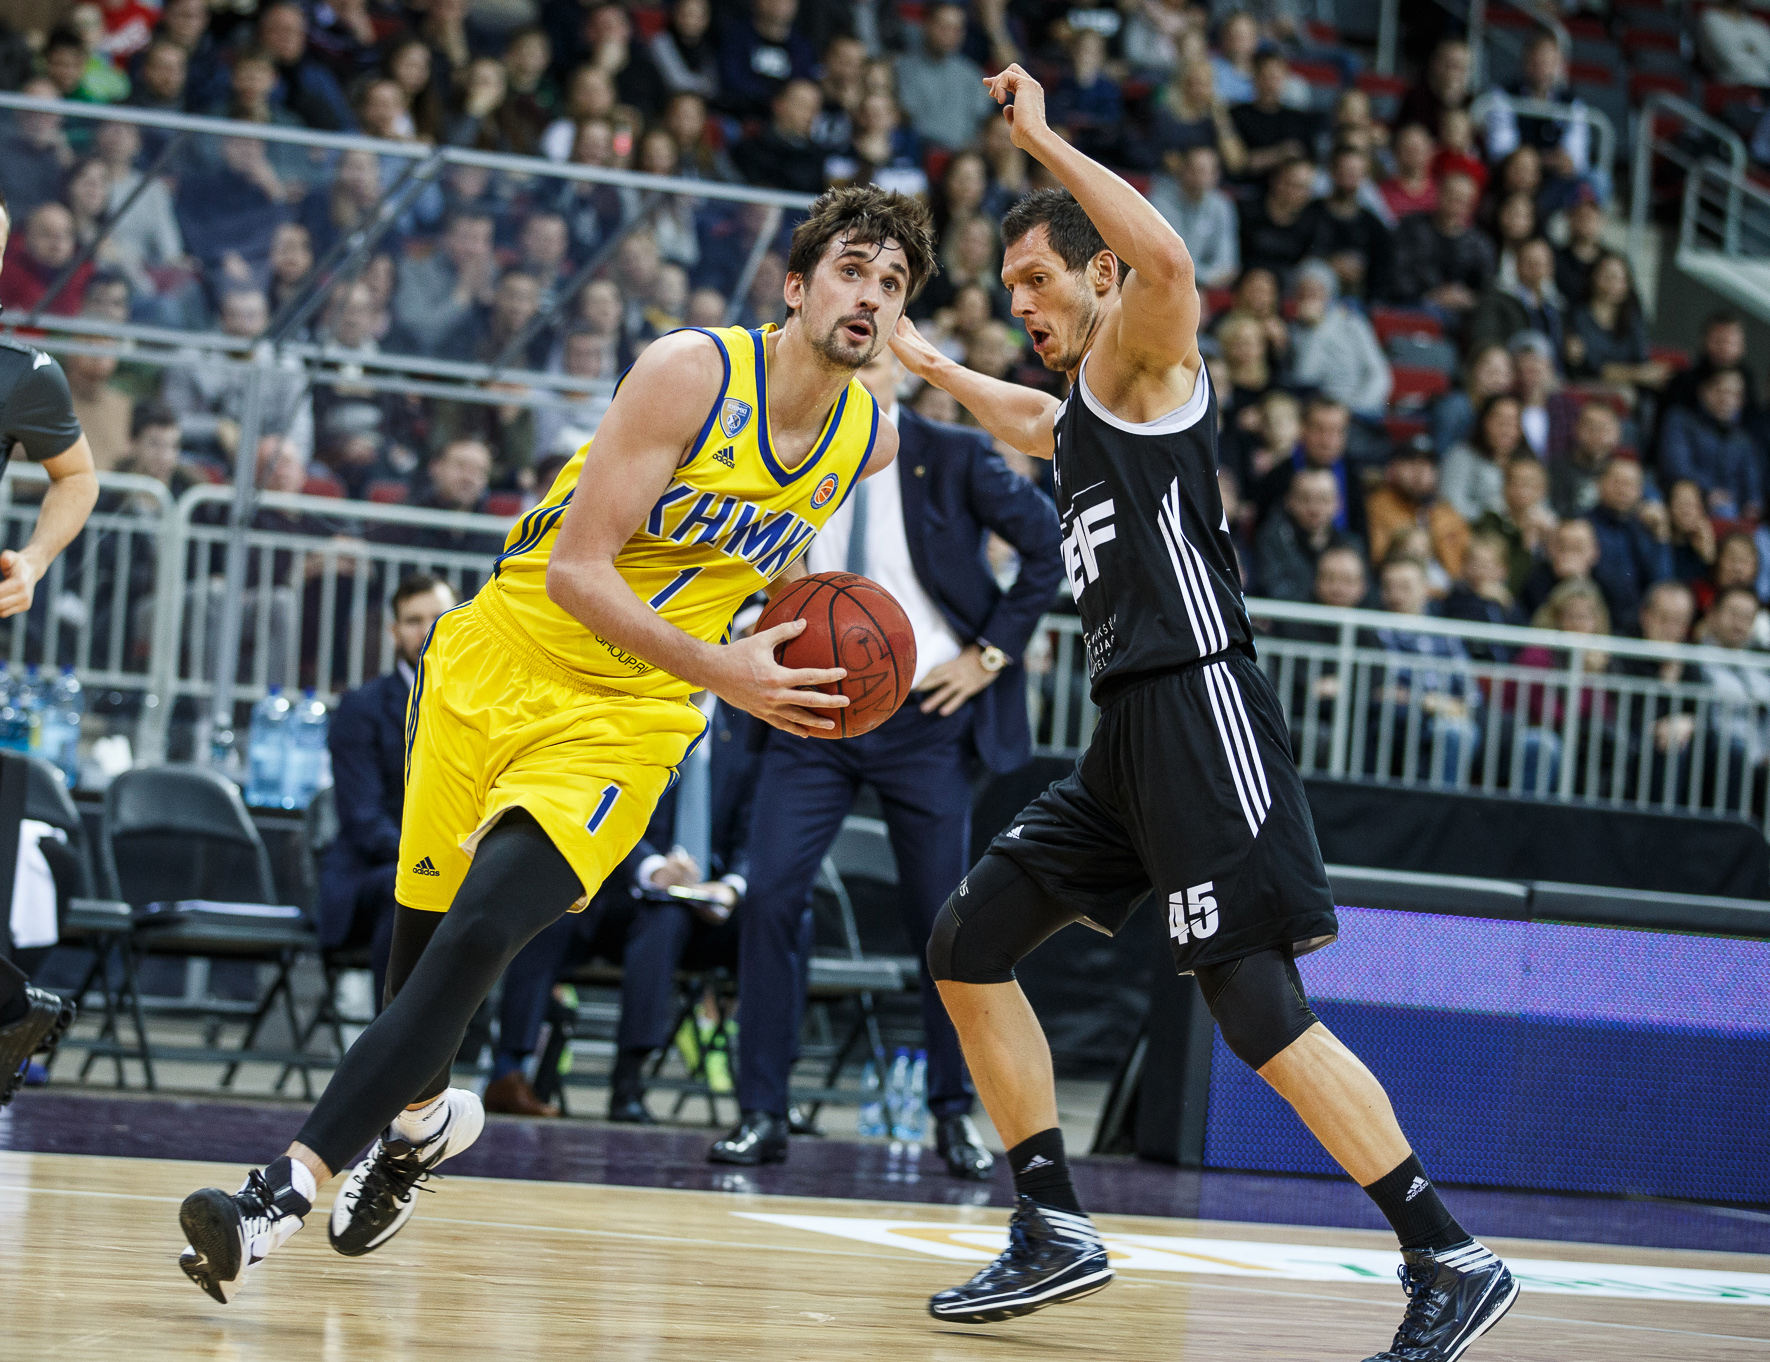 Khimki Strikes Back In Riga